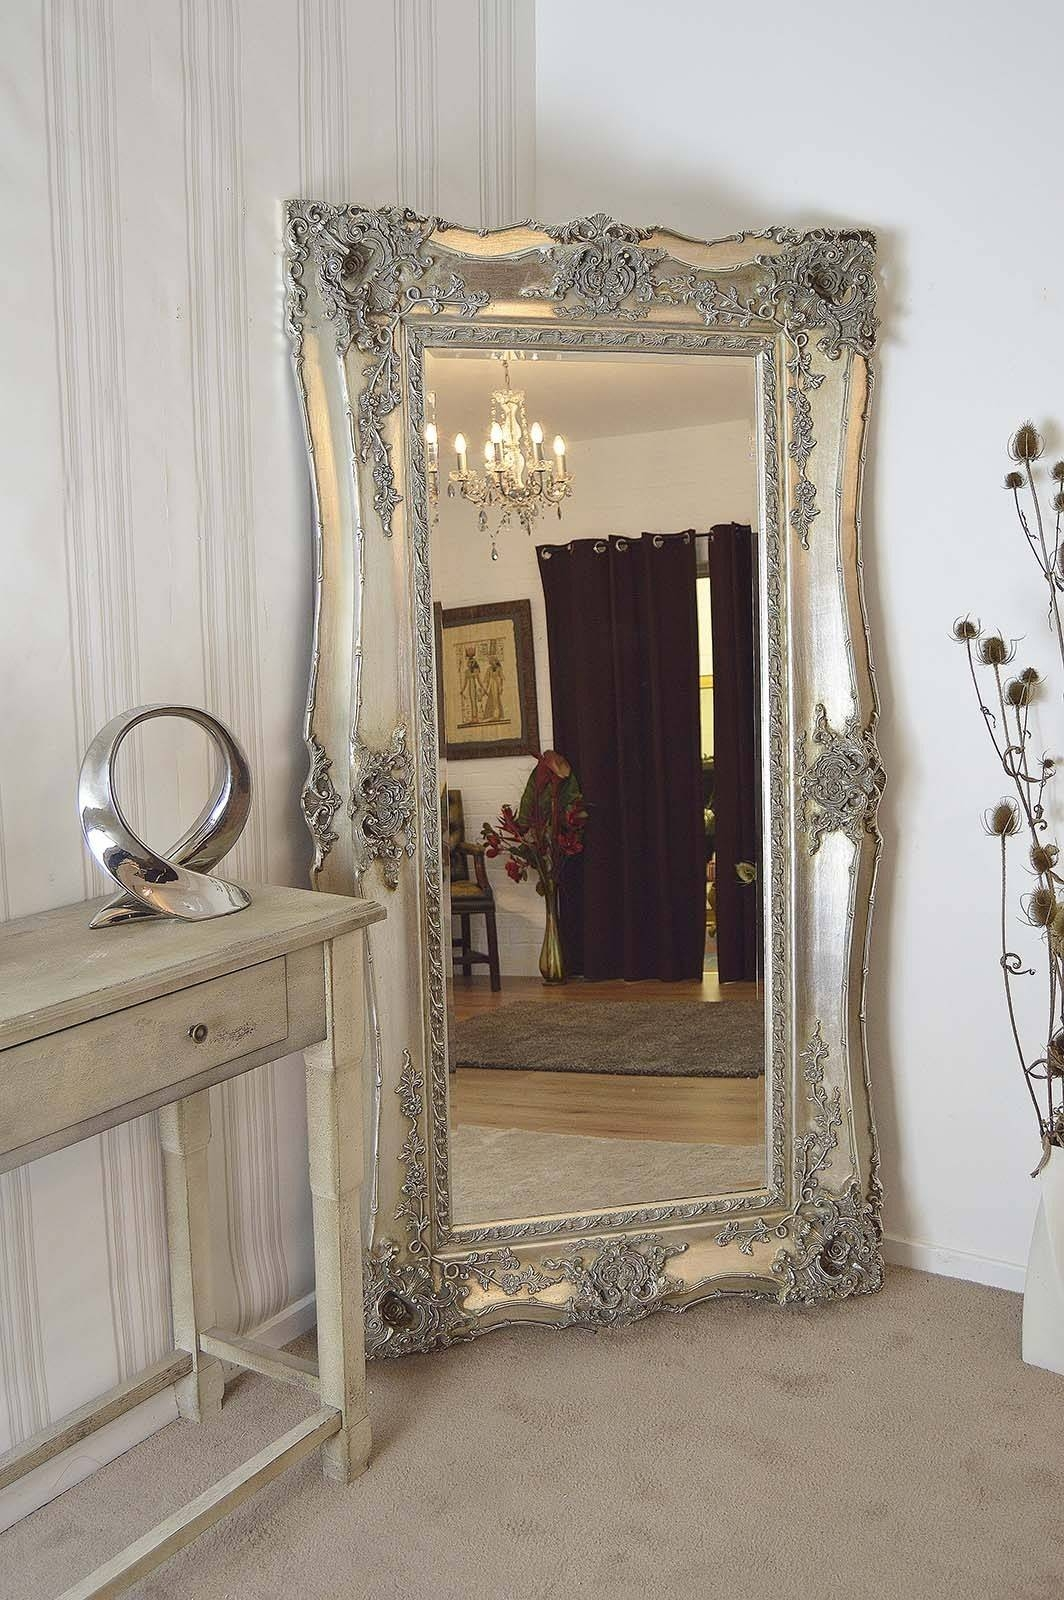 Extra Large Wall Mirrors 109 Cute Interior And Large Gold Very With Extra Large Ornate Mirrors (View 10 of 25)